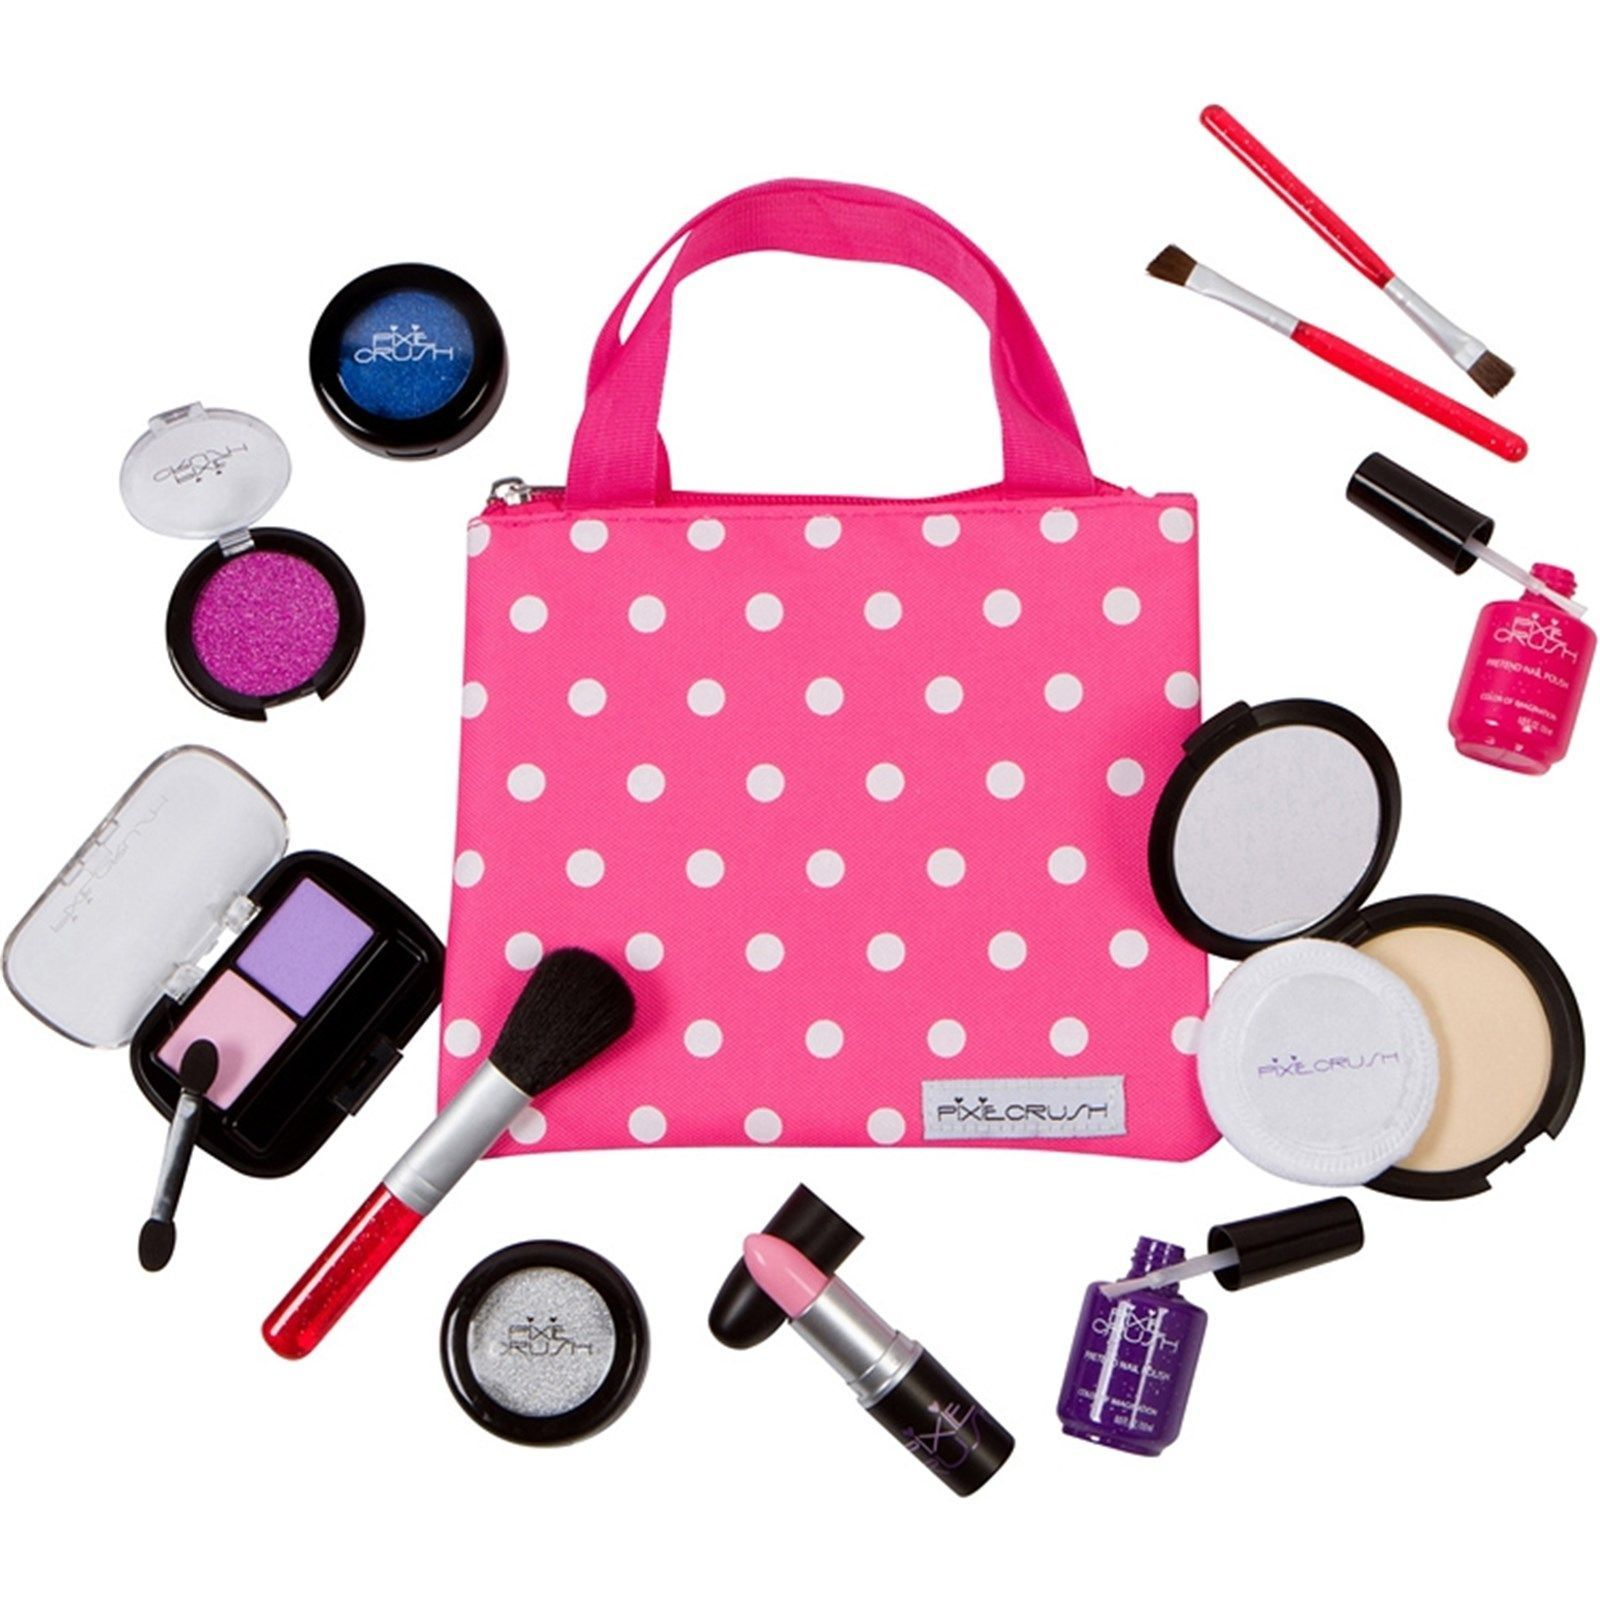 Maquillage Pretend Bases De Beaute In 2020 Play Makeup Pretend Makeup Makeup Kit